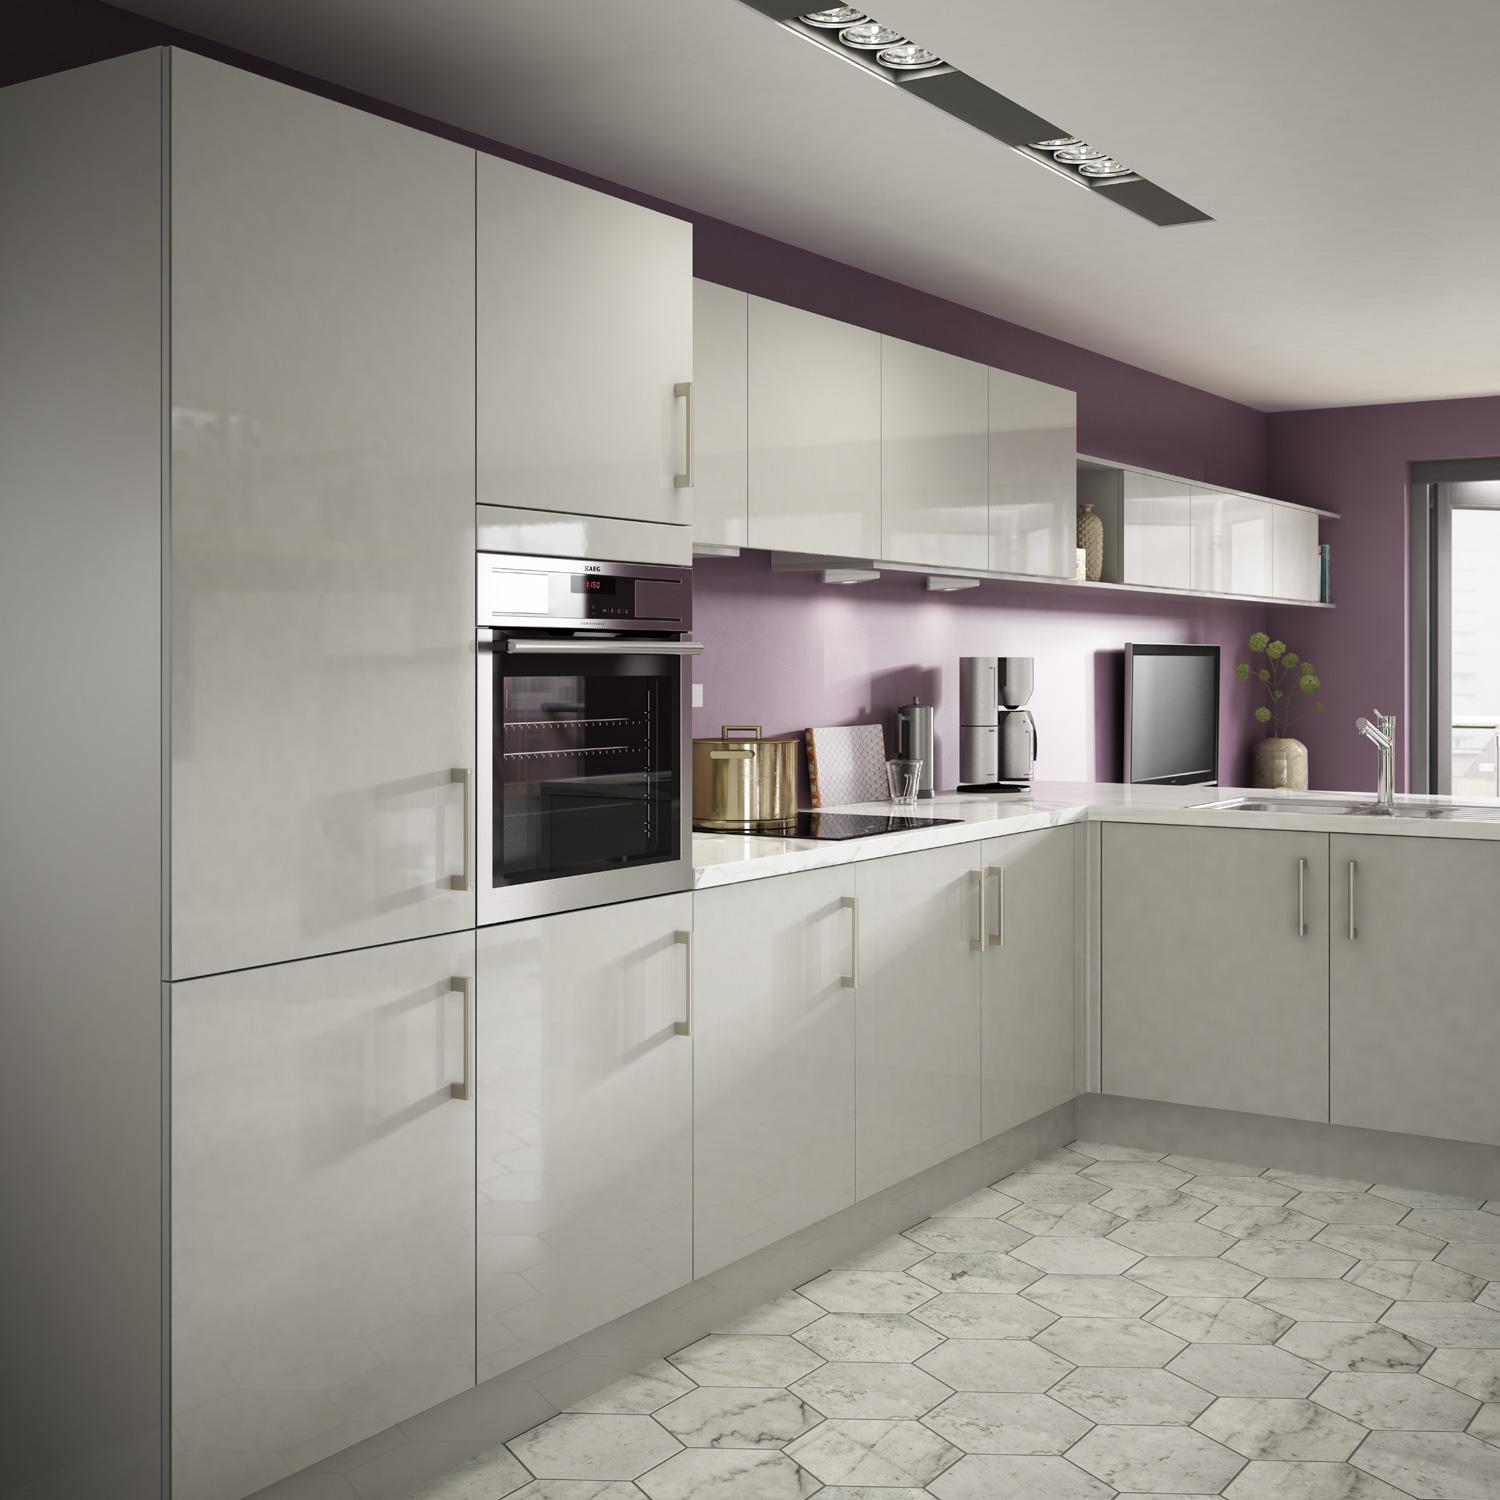 Uk Kitchens And Bathrooms Symphony Kitchens Modern